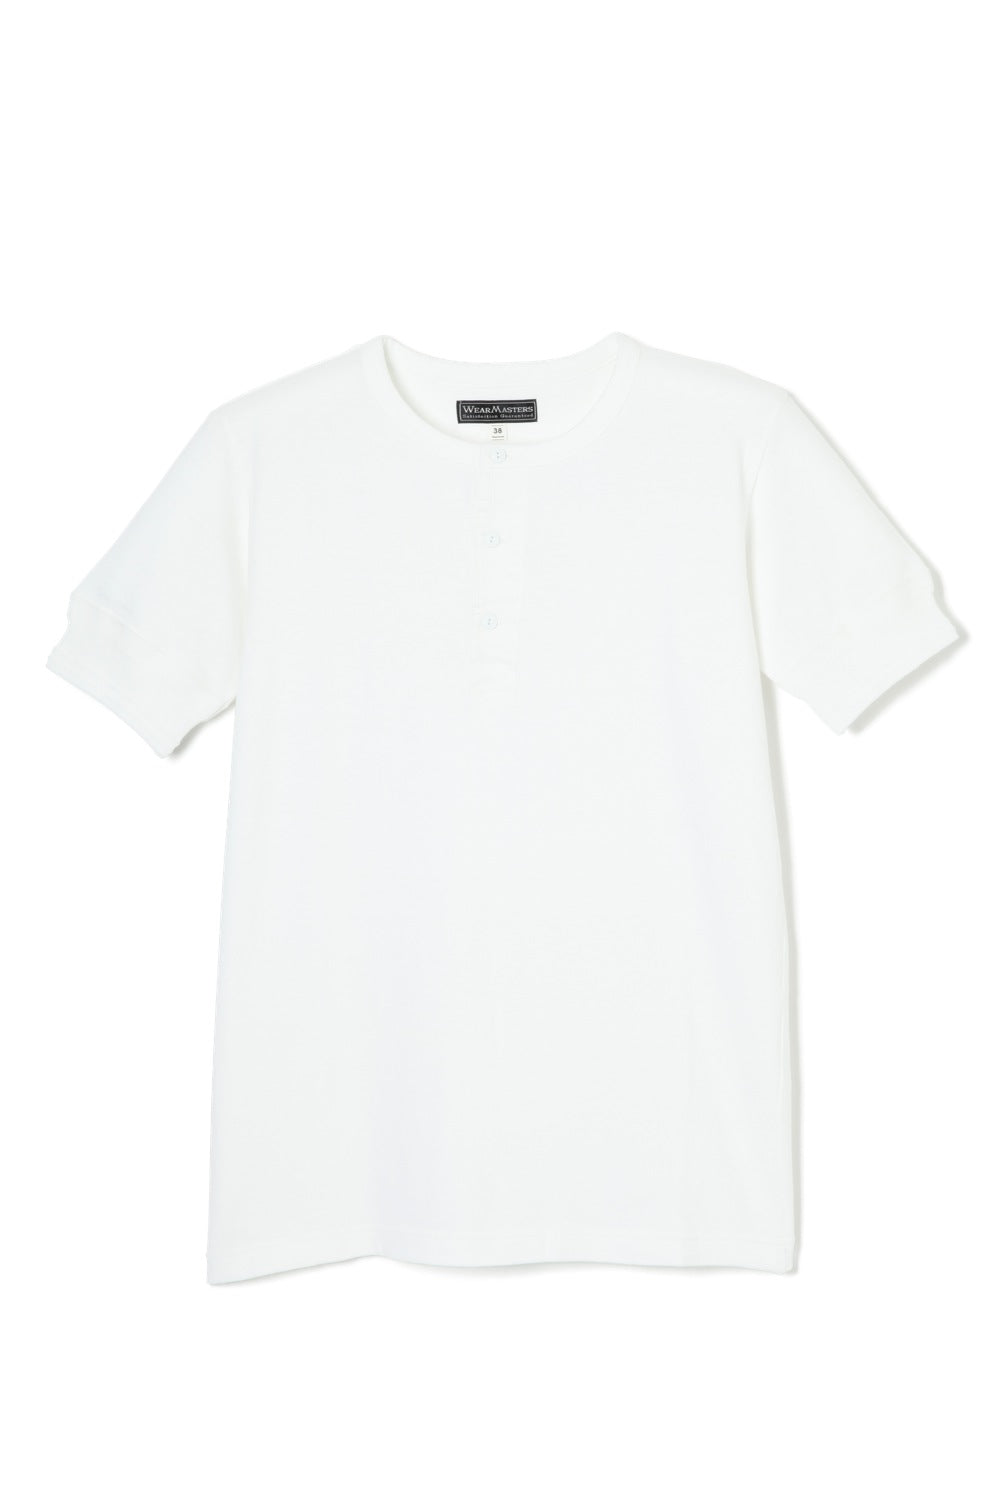 Lot.612 Henley Neck Tee -White-